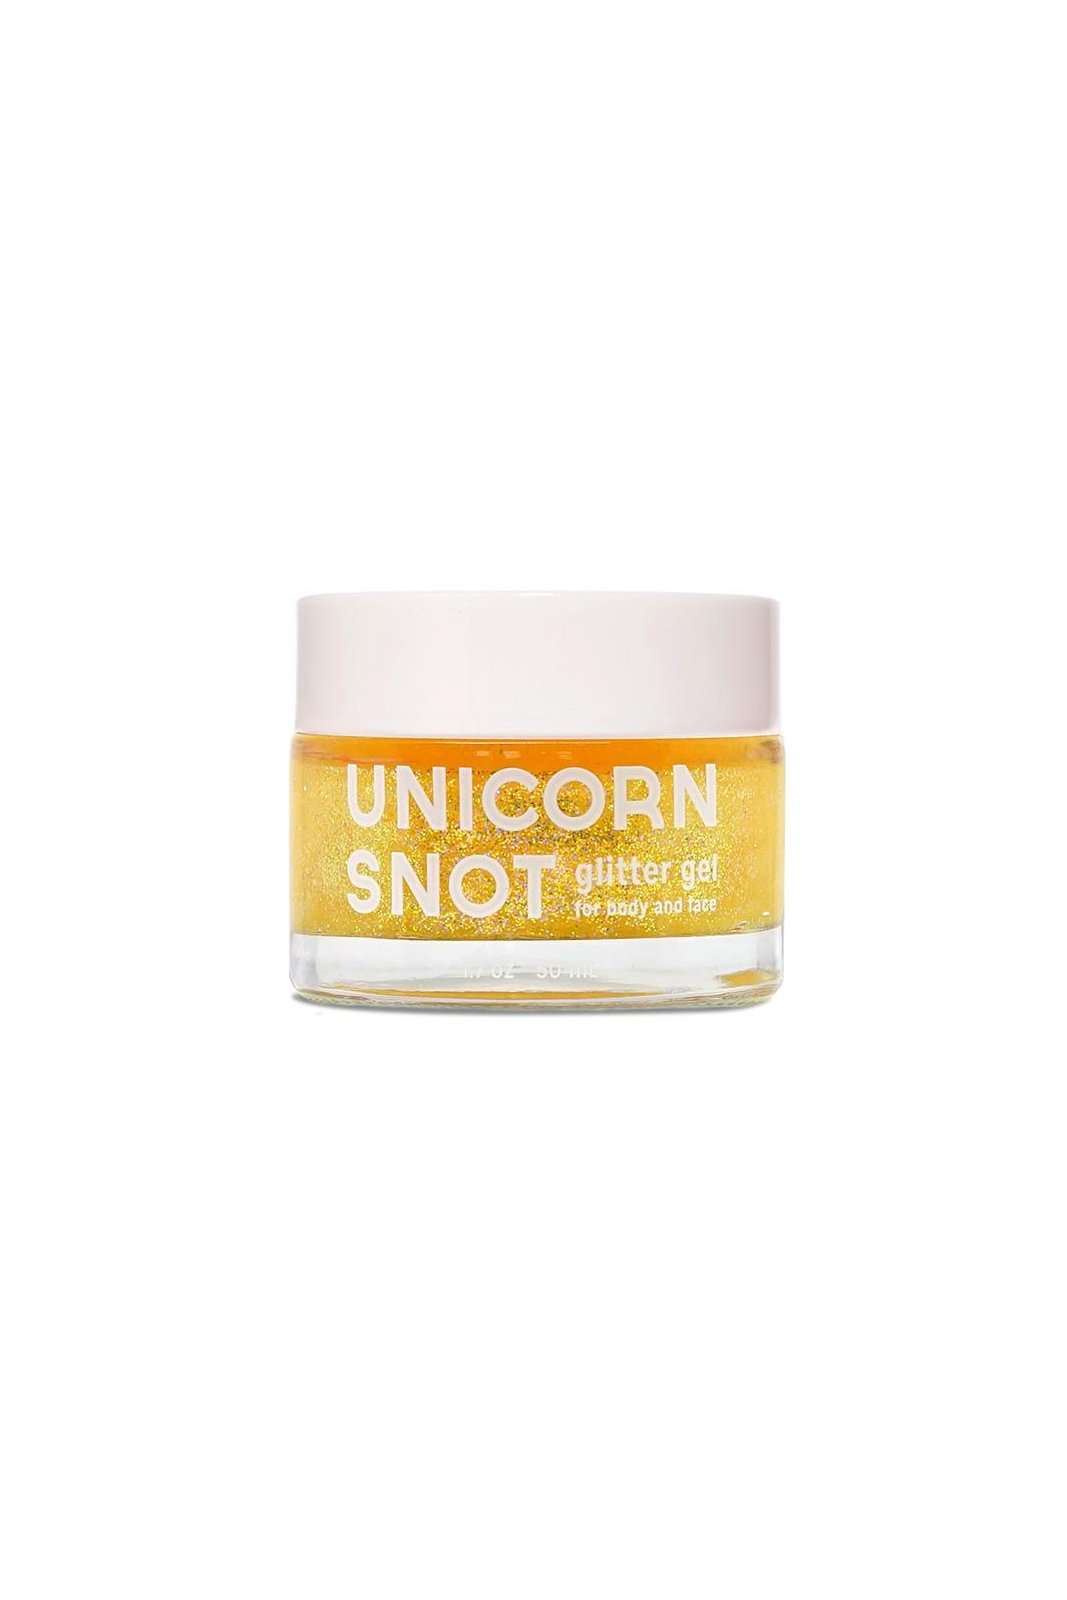 Unicorn Snot Glitter Gel Gold